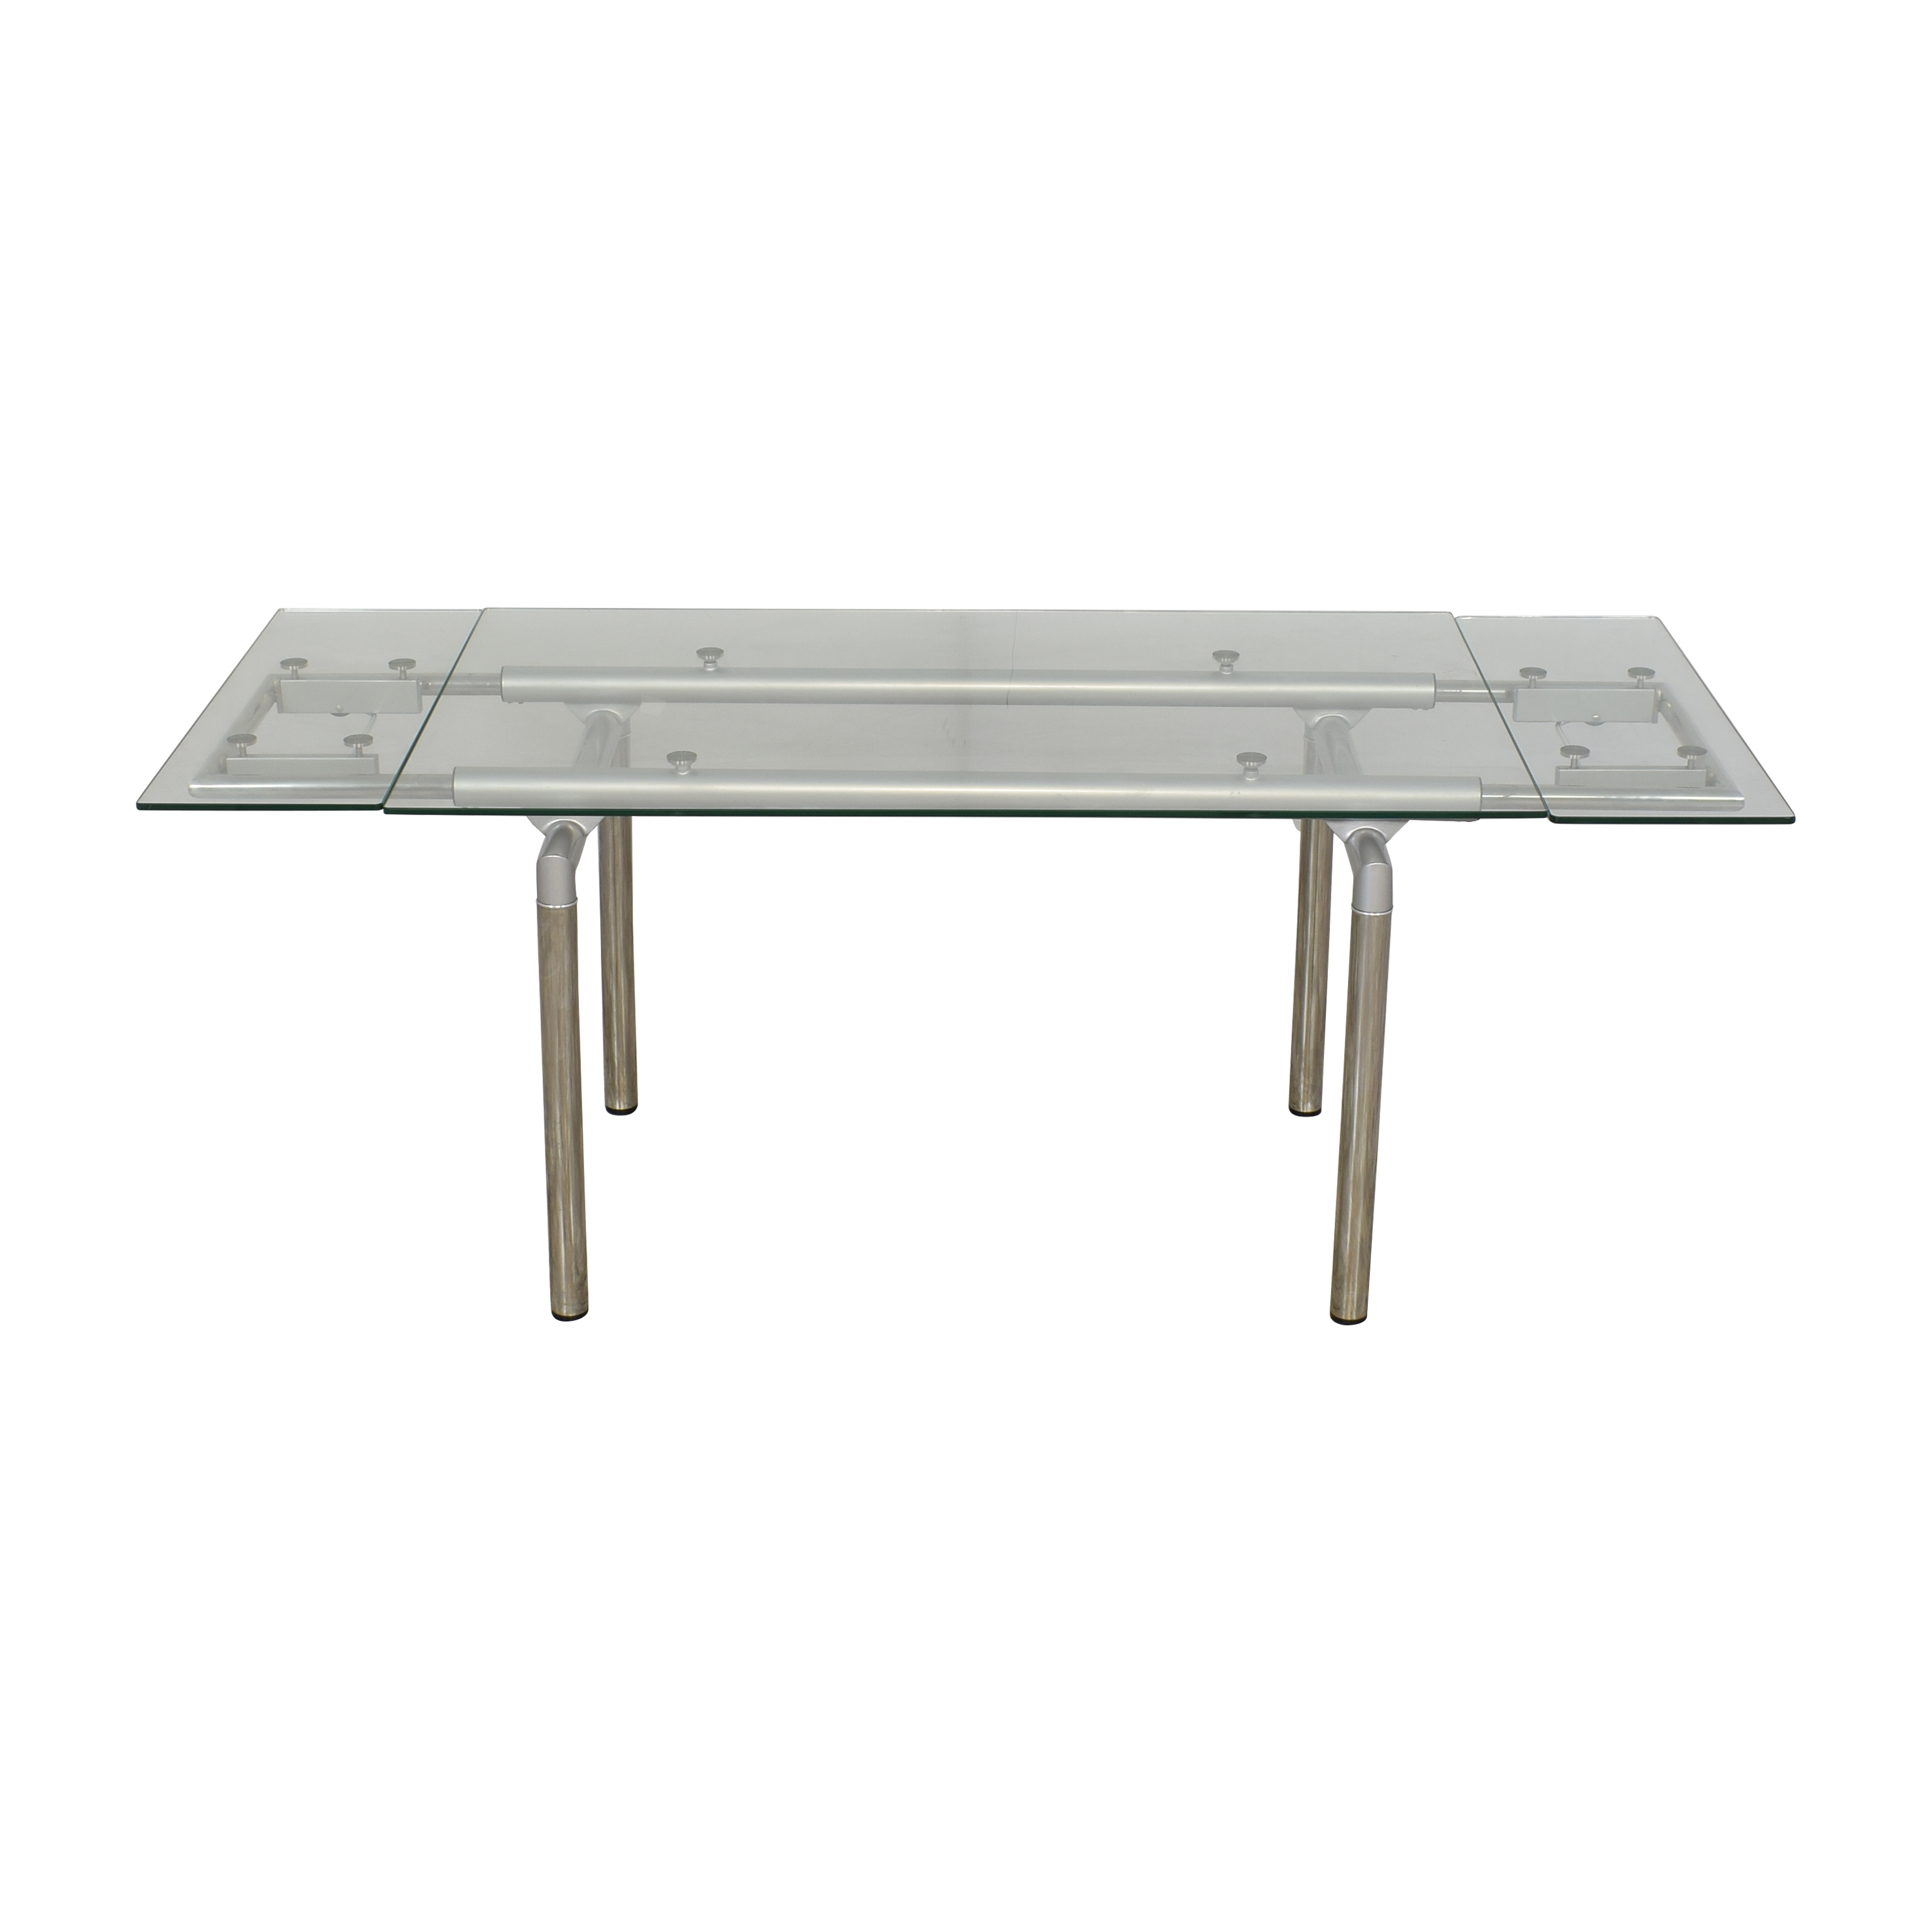 Modern Style Extendable Dining Table / Tables